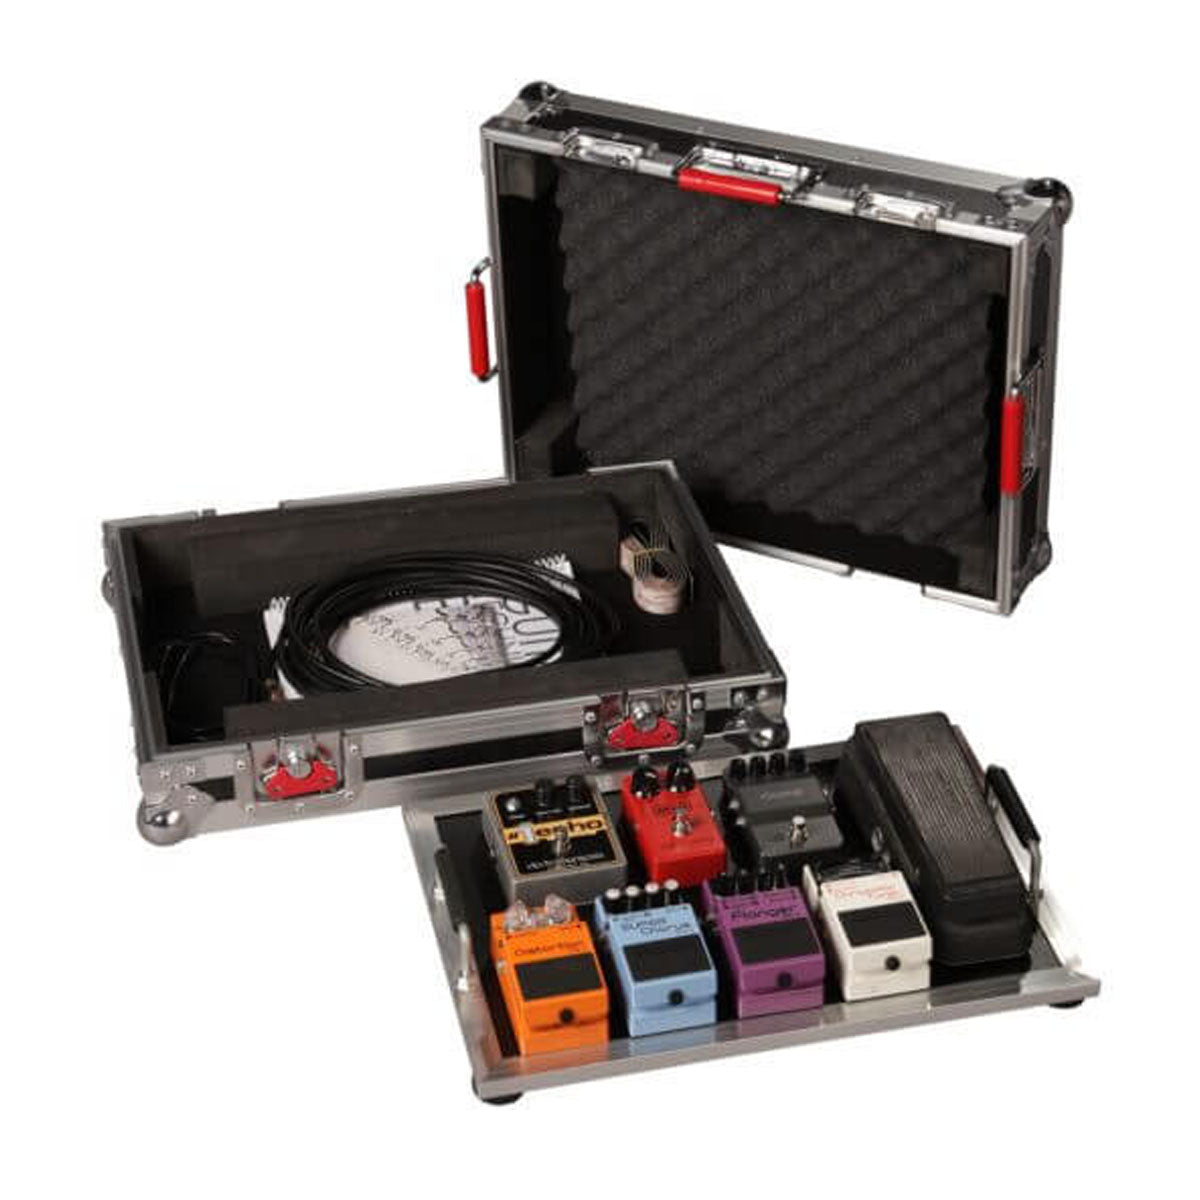 Gator G-TOUR PEDALBOARD-SM Small Pedal Board & Flight Case